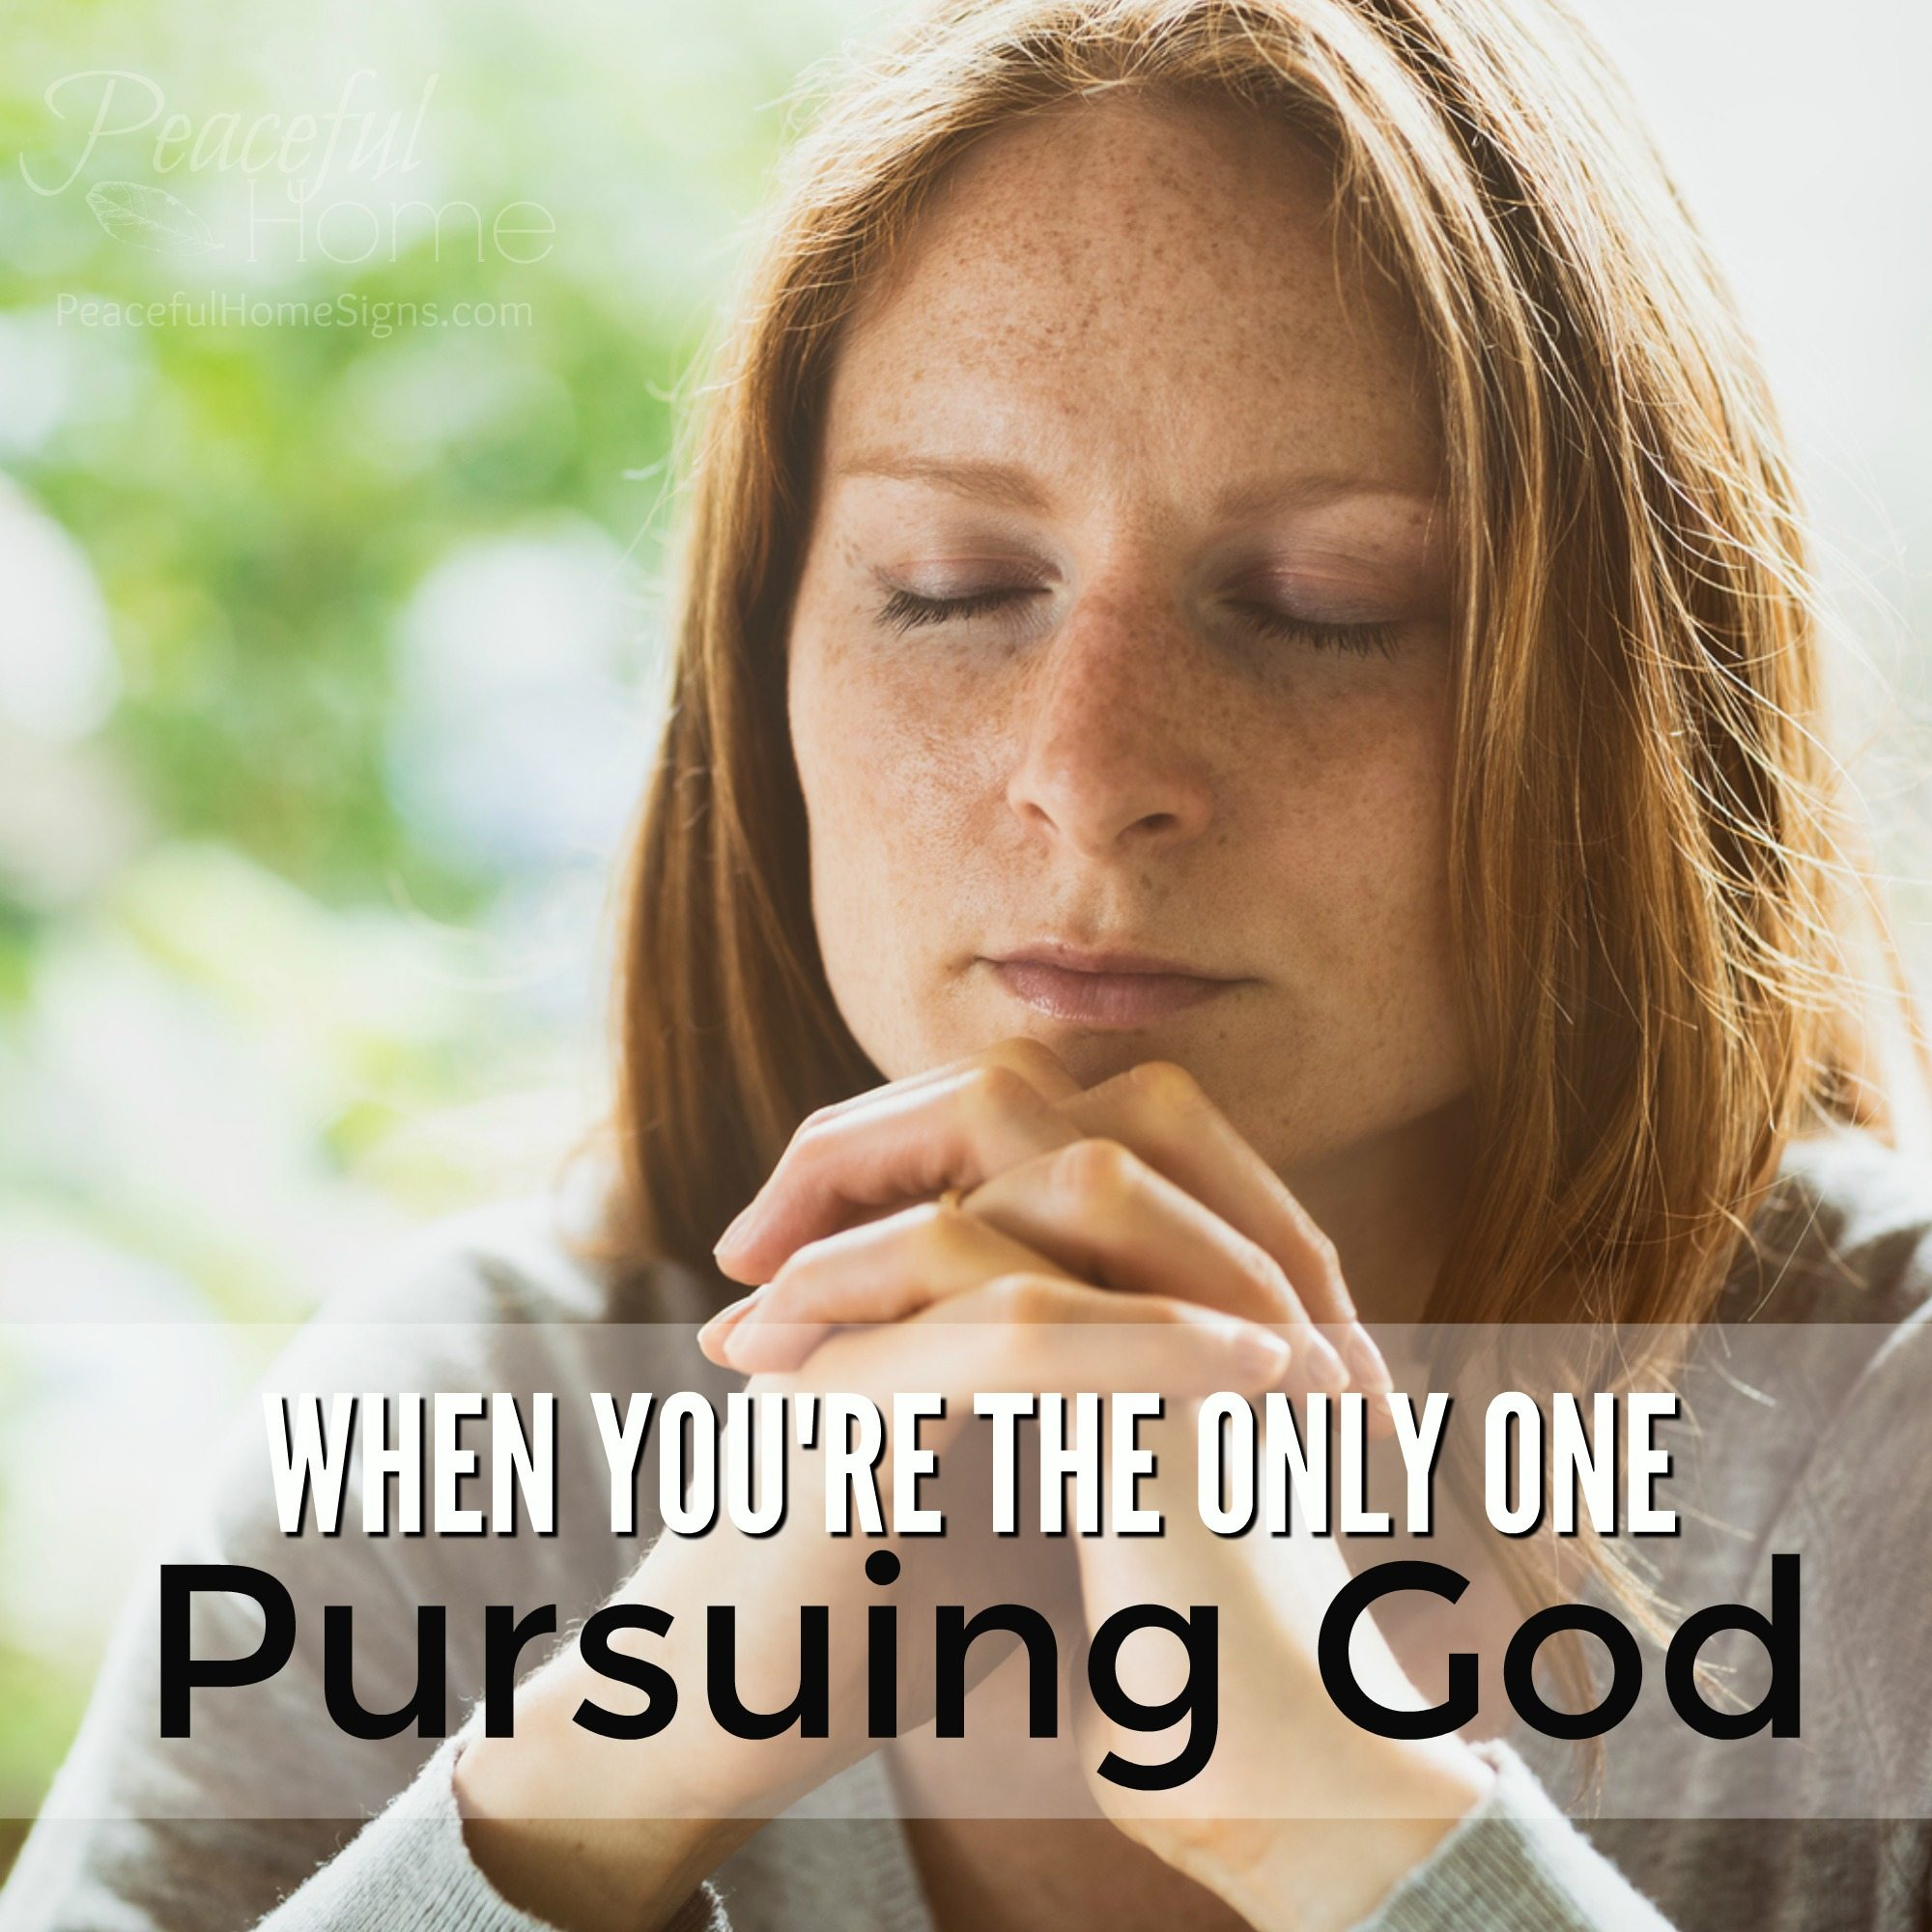 When you're the only one pursuing God